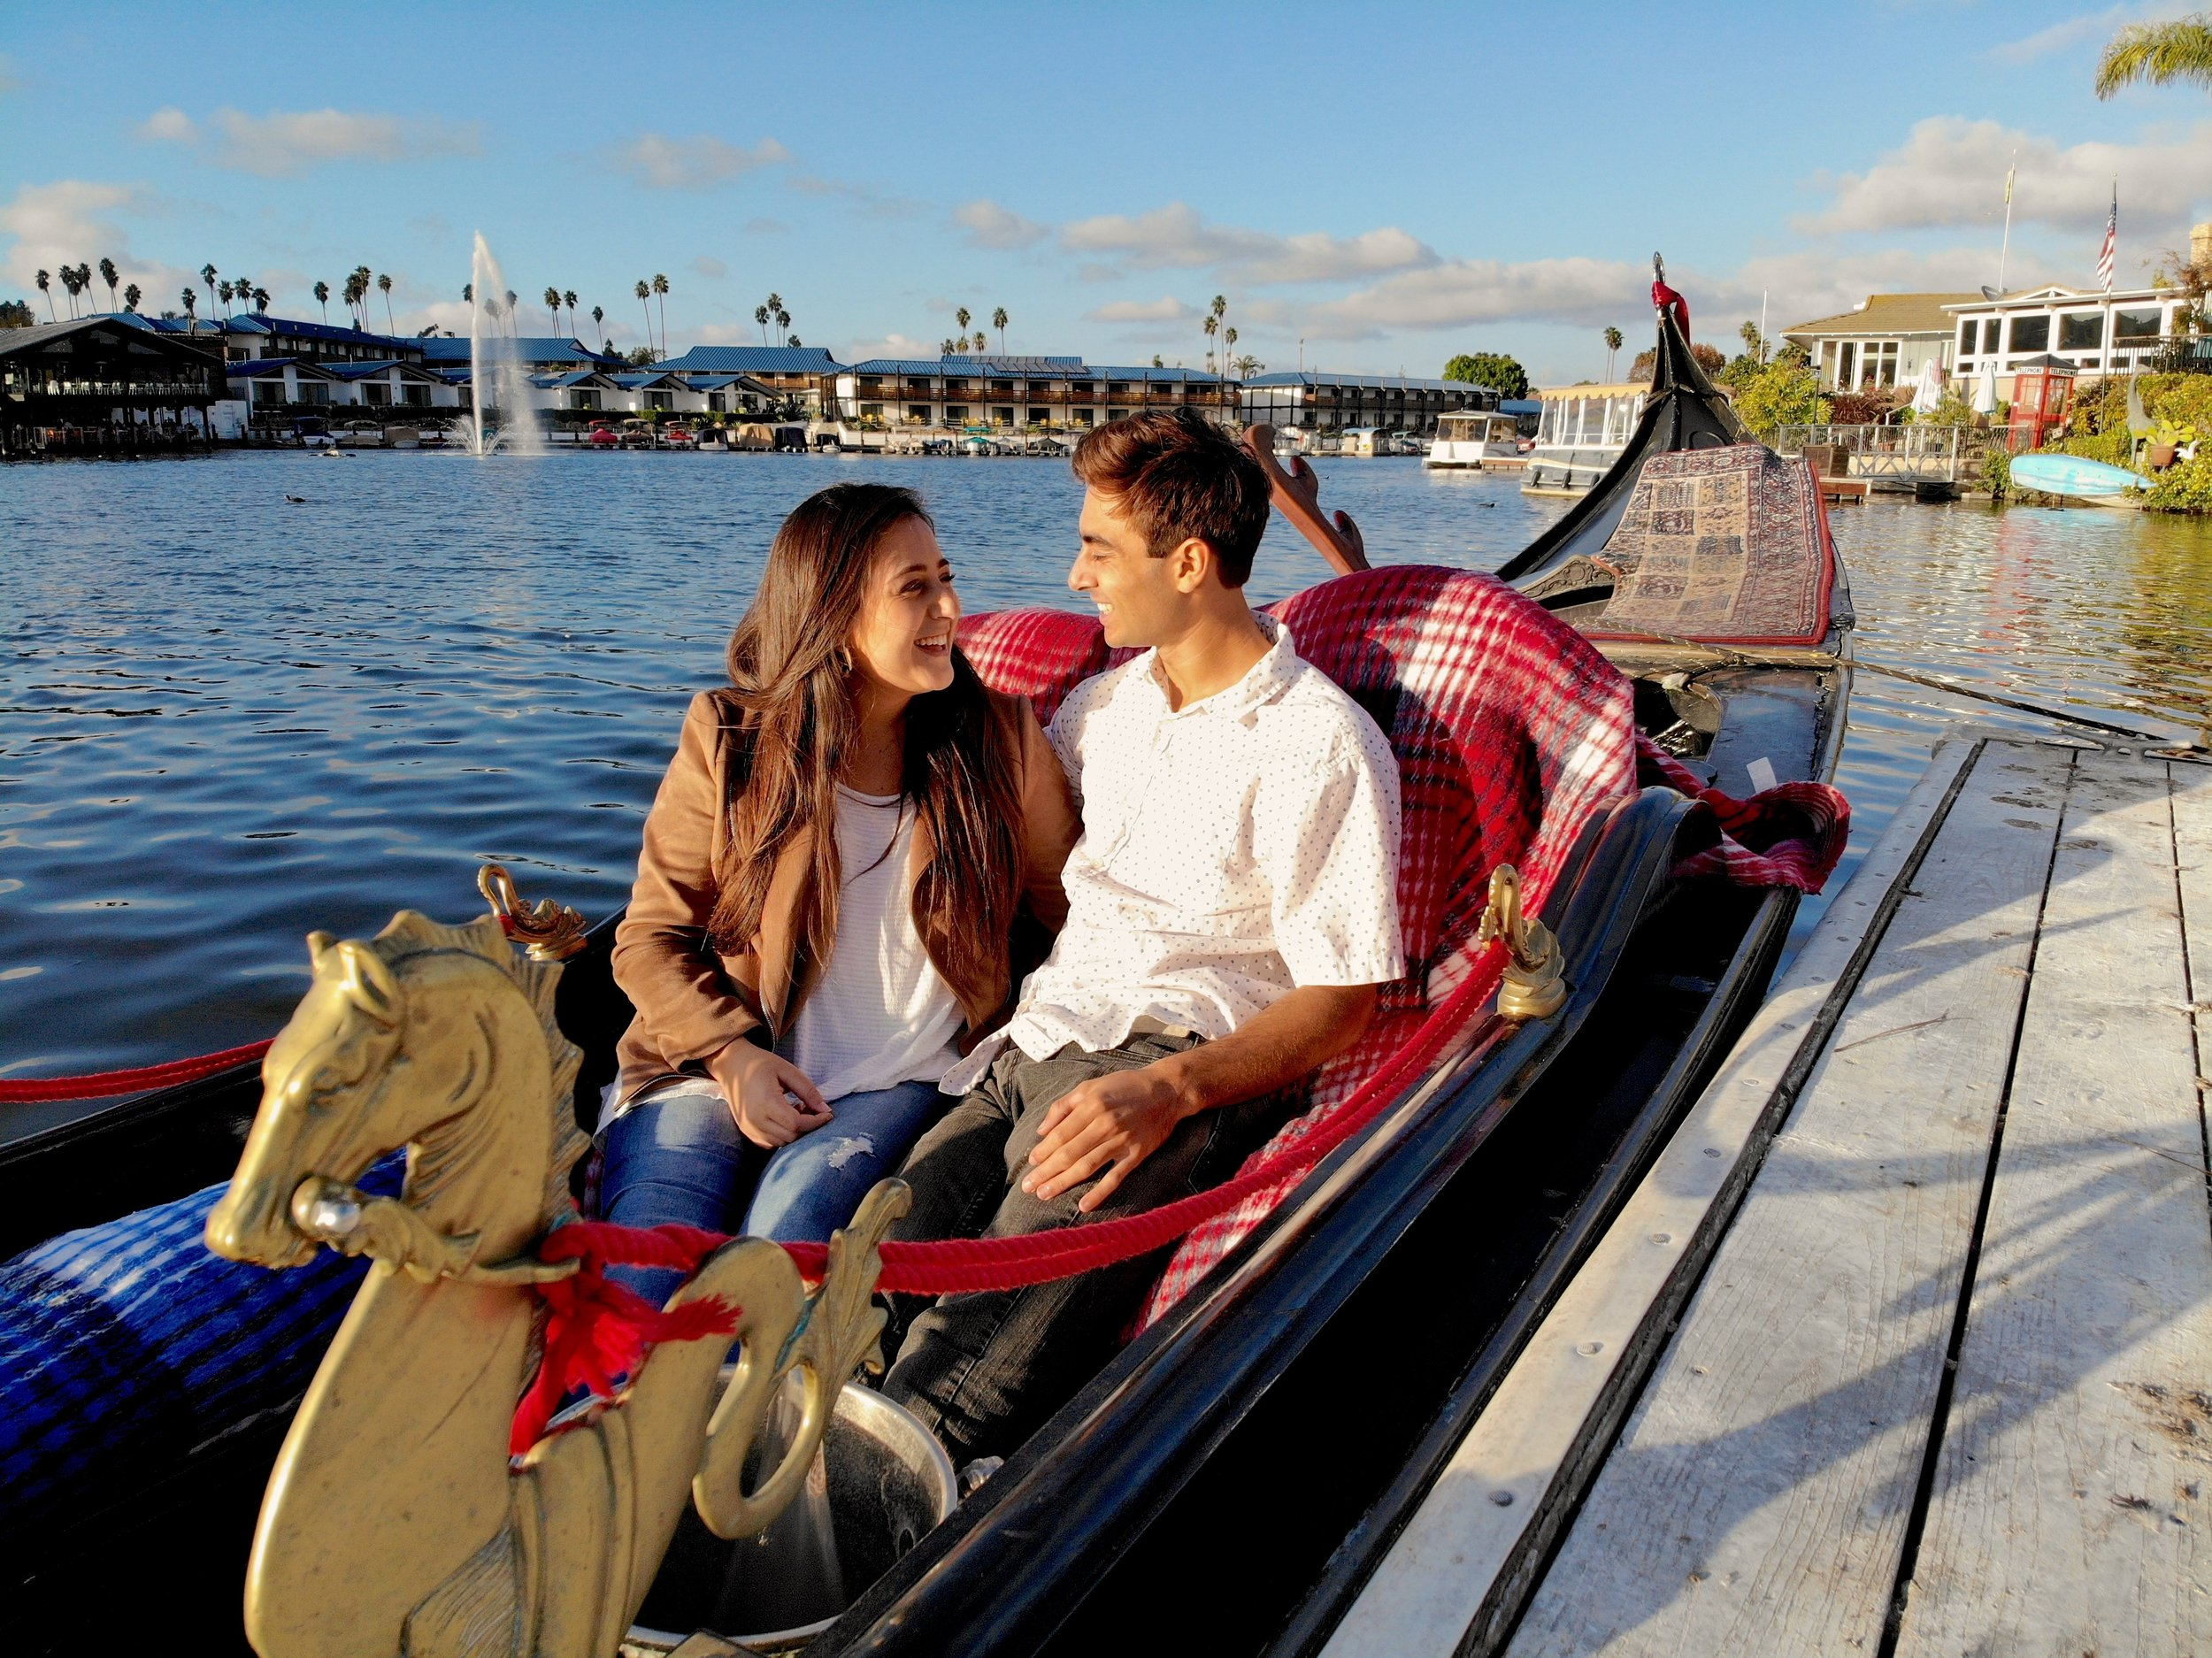 Relax and take in the peaceful scenery as your gondolier paddles you around Lake San Marcos on this one hour cruise! - Add-ons are available to enrich your gondola experience with Black Swan Gondola Company!